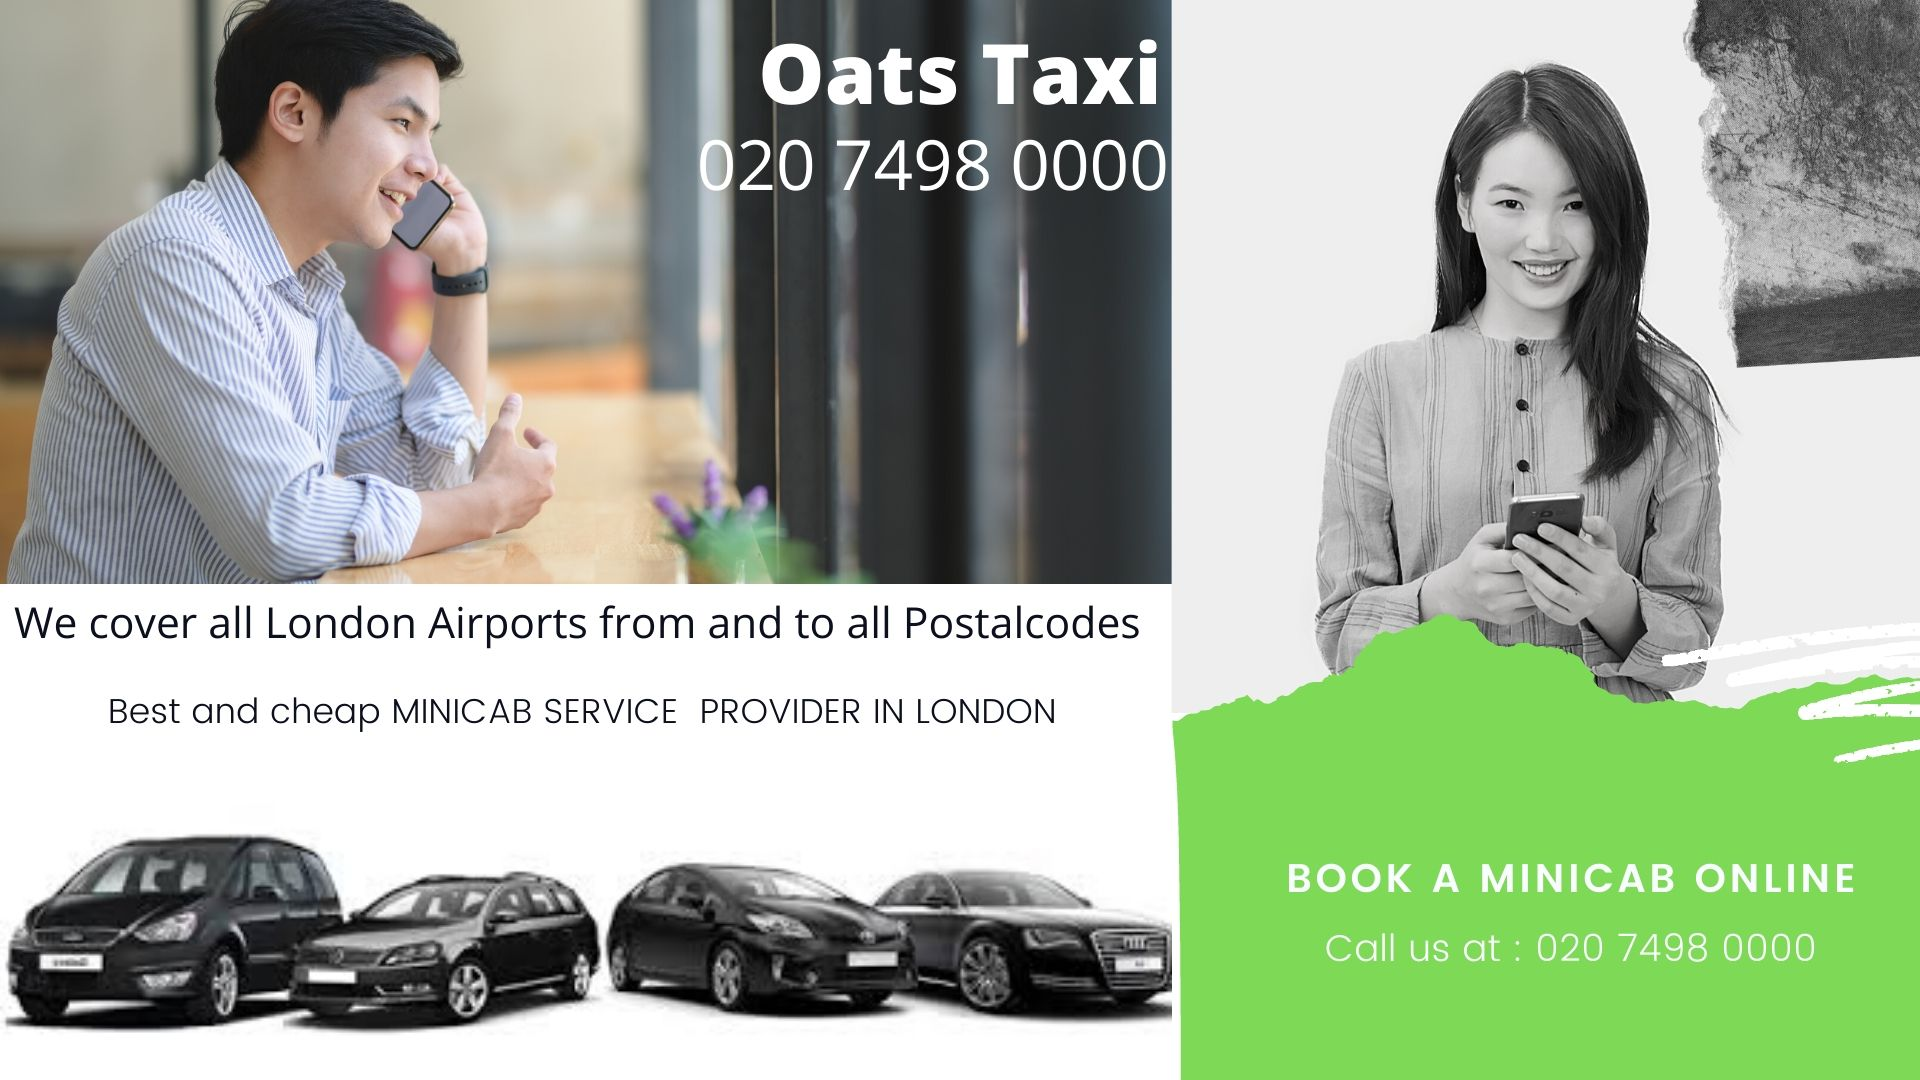 Minicab Office Near FOXMORE STREET, Battersea SW11, Minicab From Battersea SW11 To Gatwick Airport